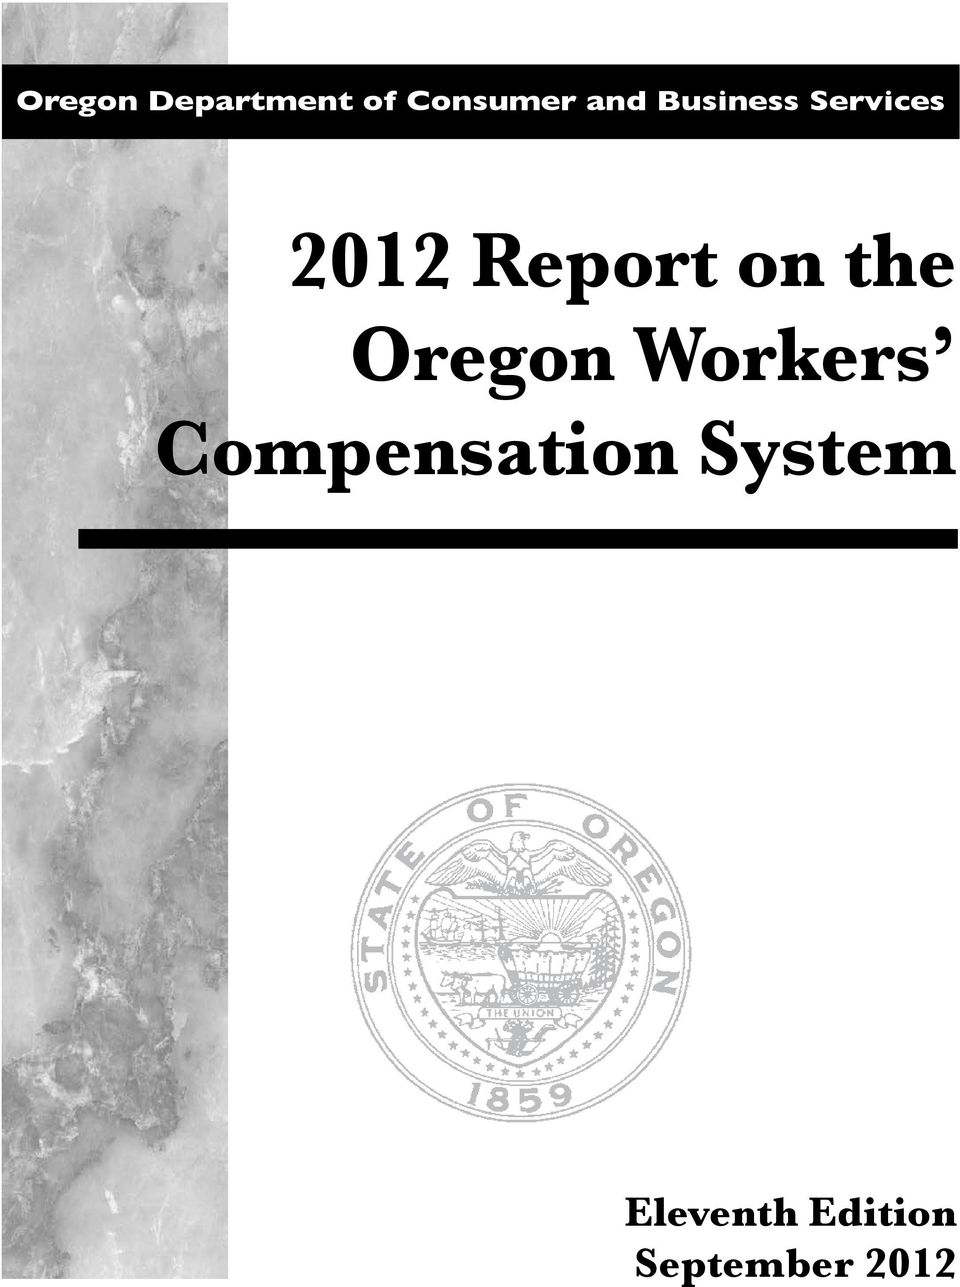 the Oregon Workers Compensation